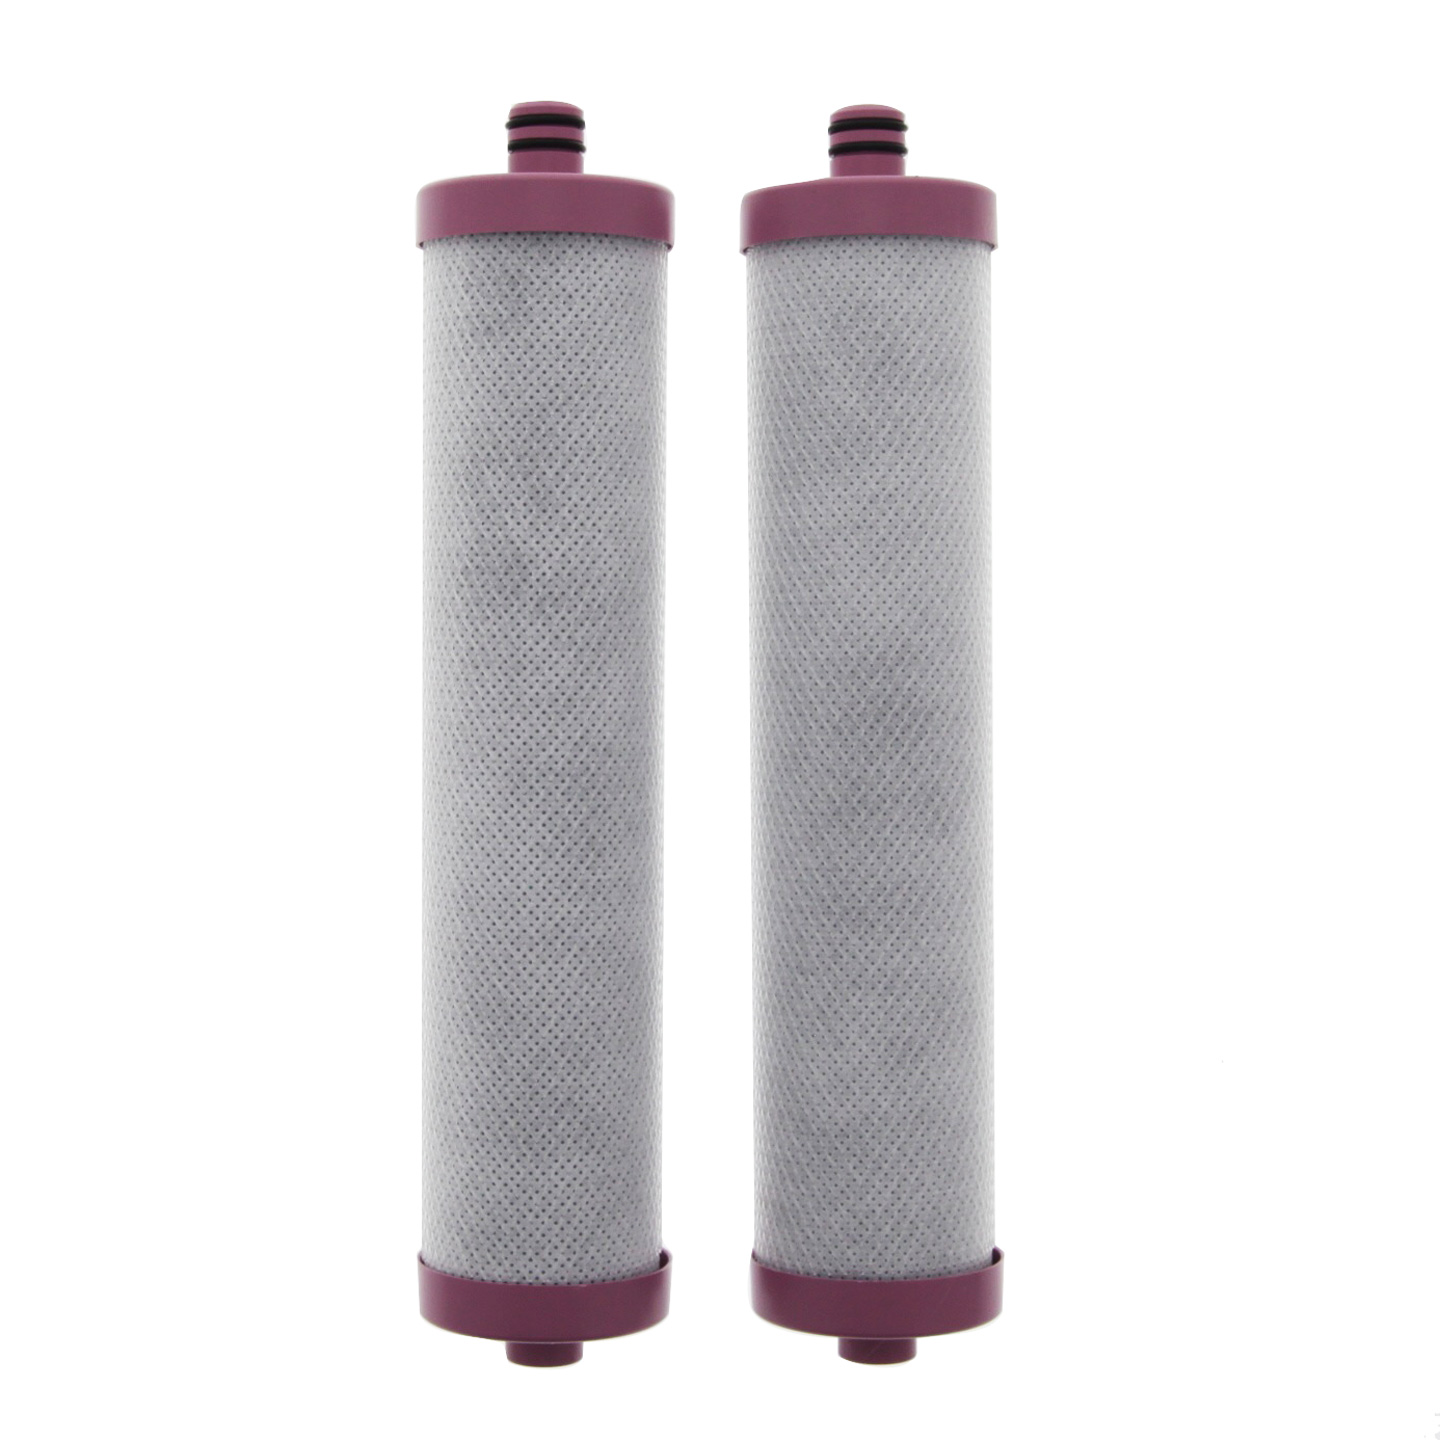 Whirlpool WHERF Under Sink Reverse Osmosis Replacement Filters WHIRLPOOL-WHERF